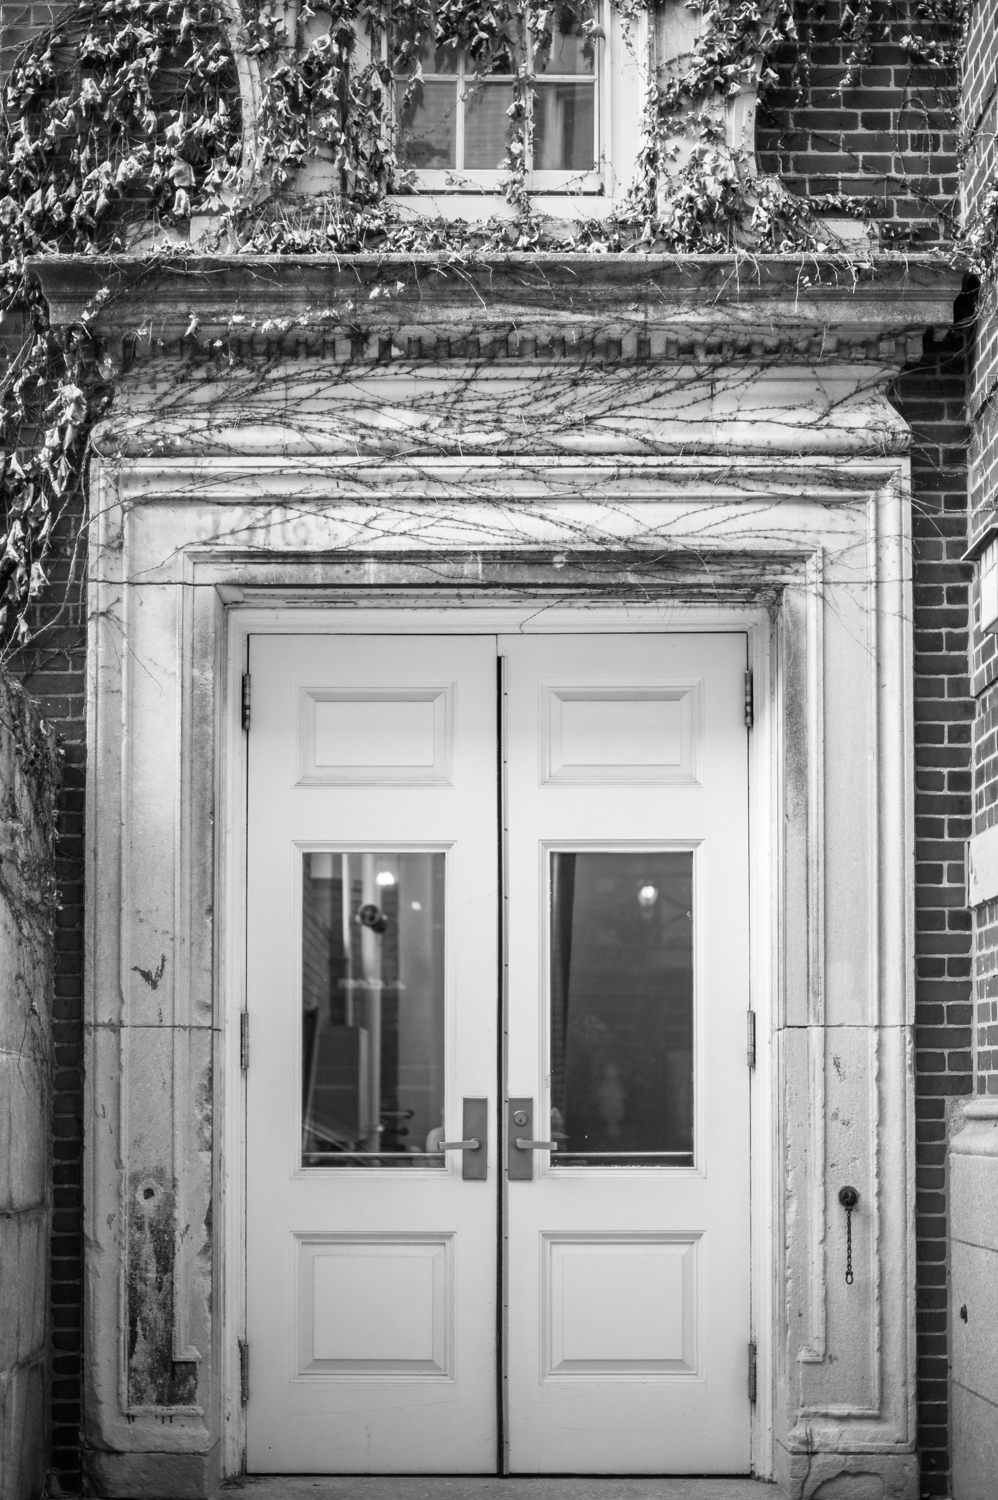 054_savidge_photography_architecture.jpg